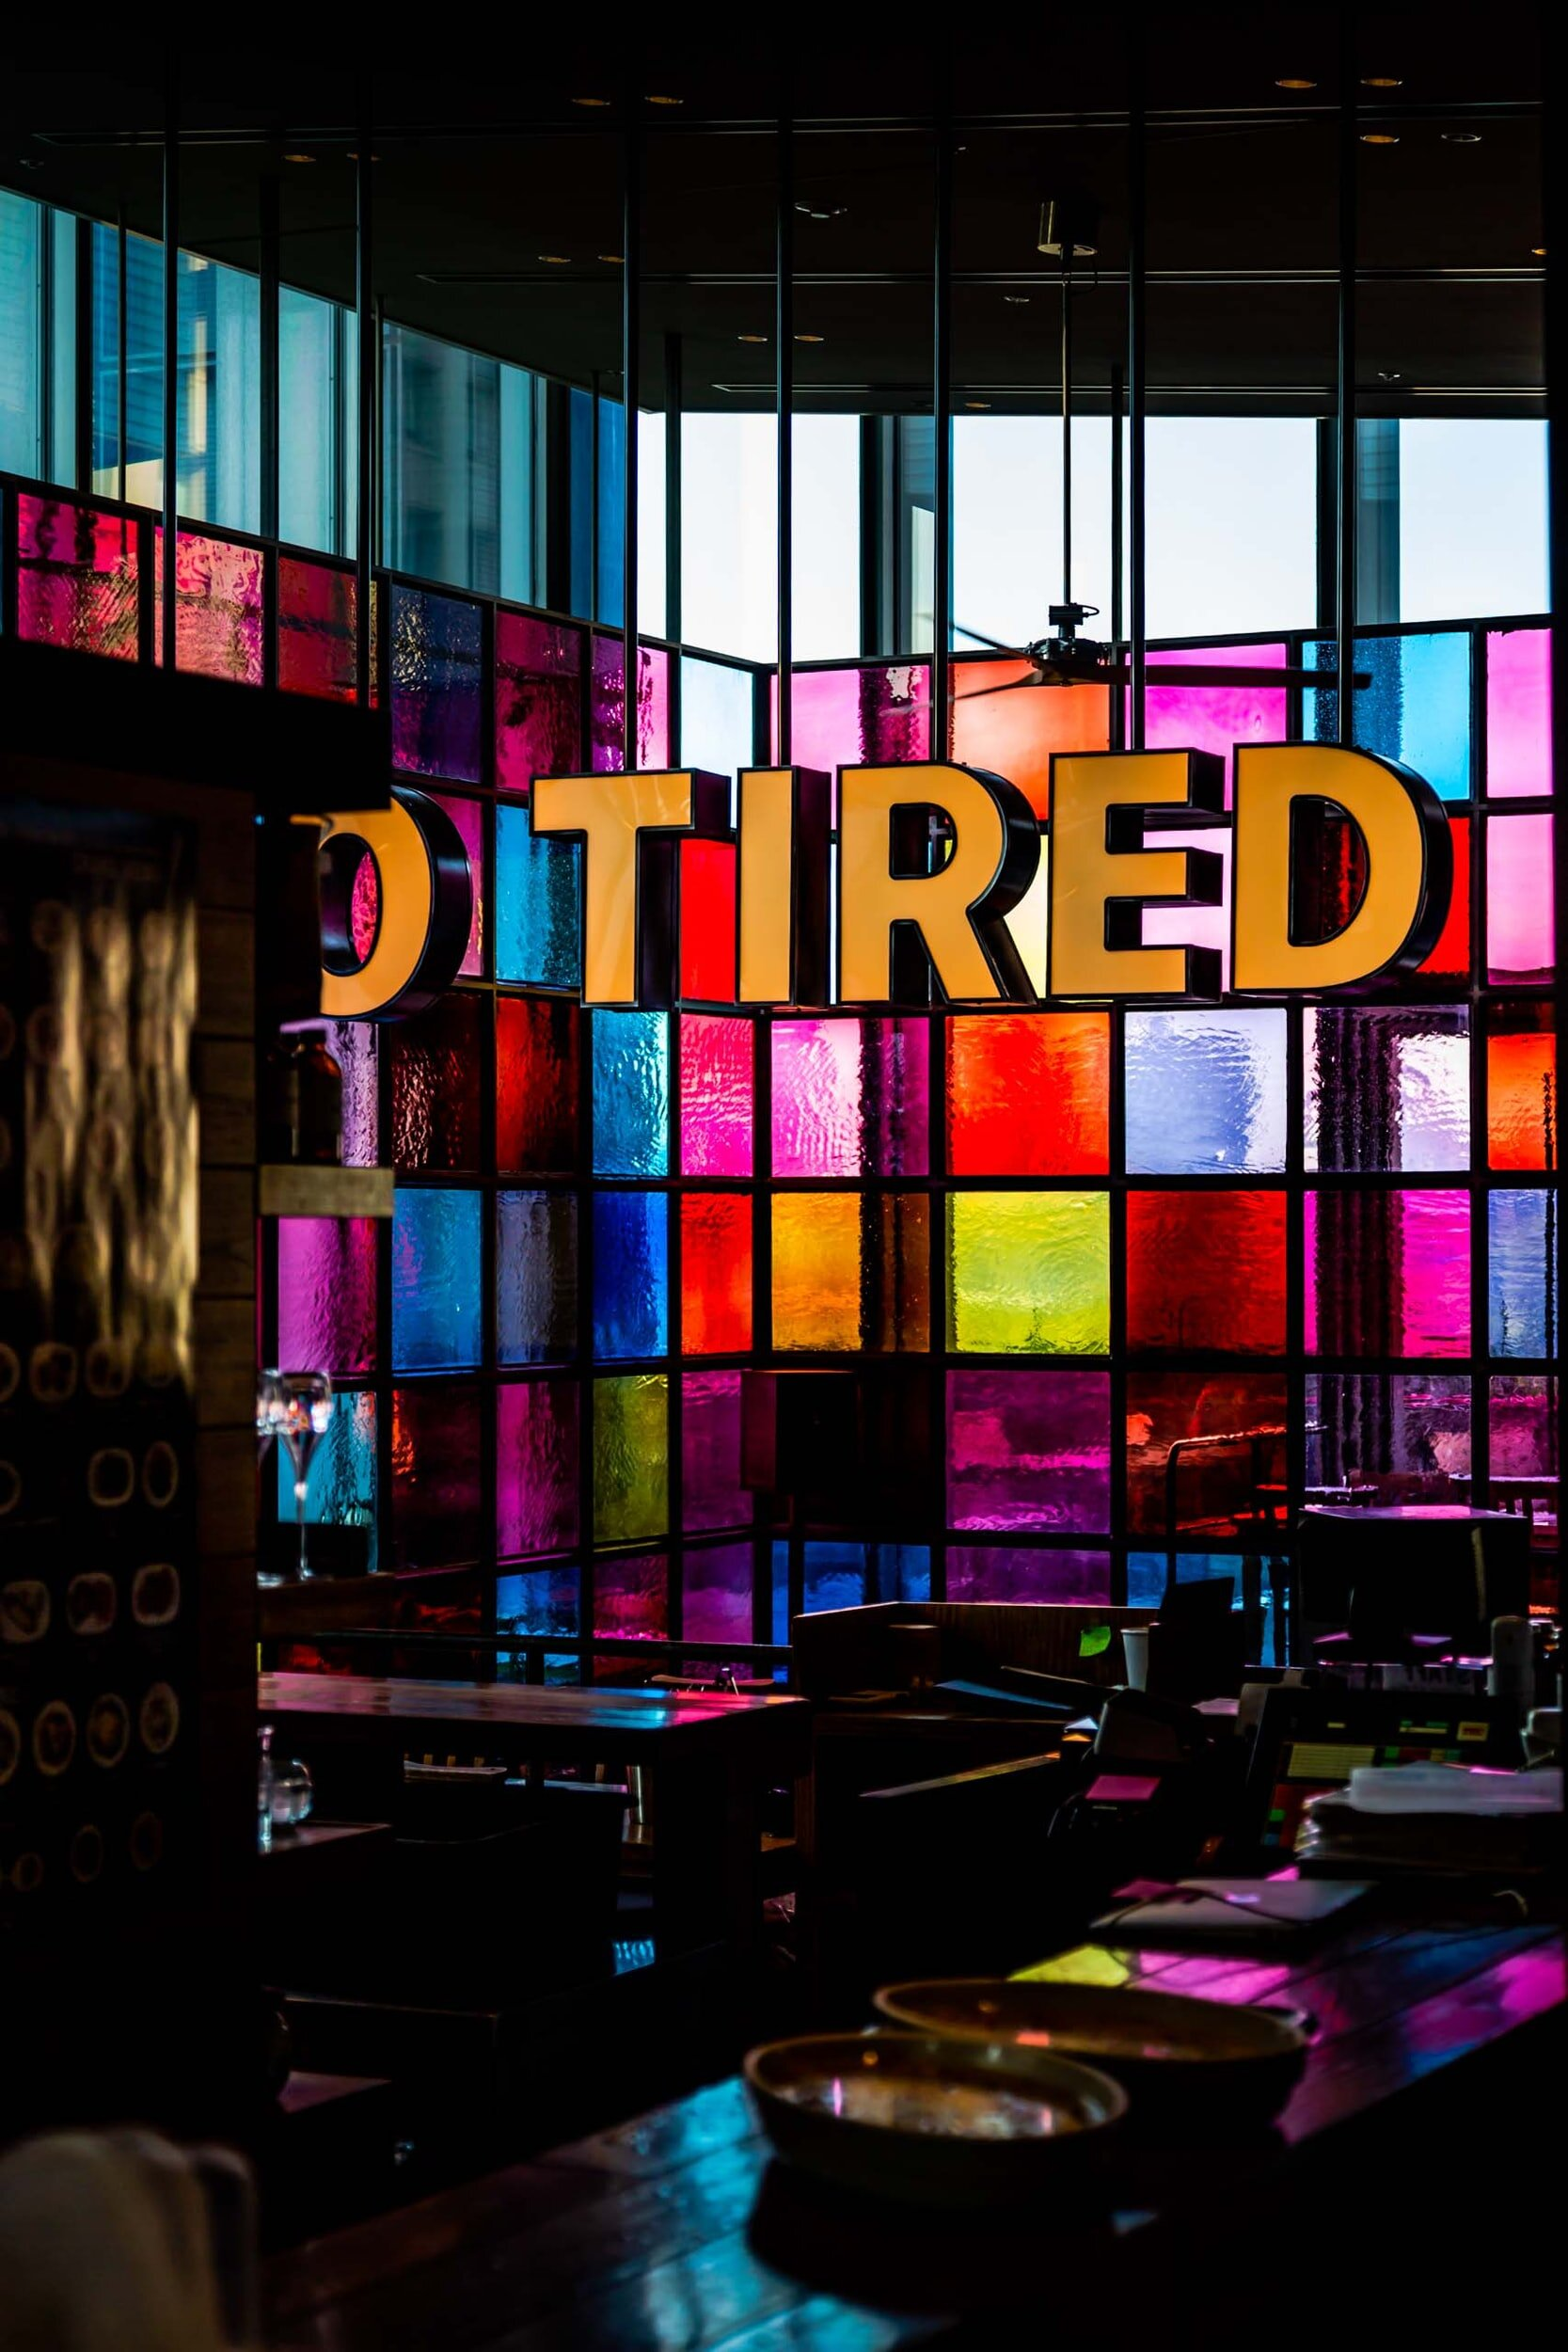 Tired sign in front of multi-colored glass